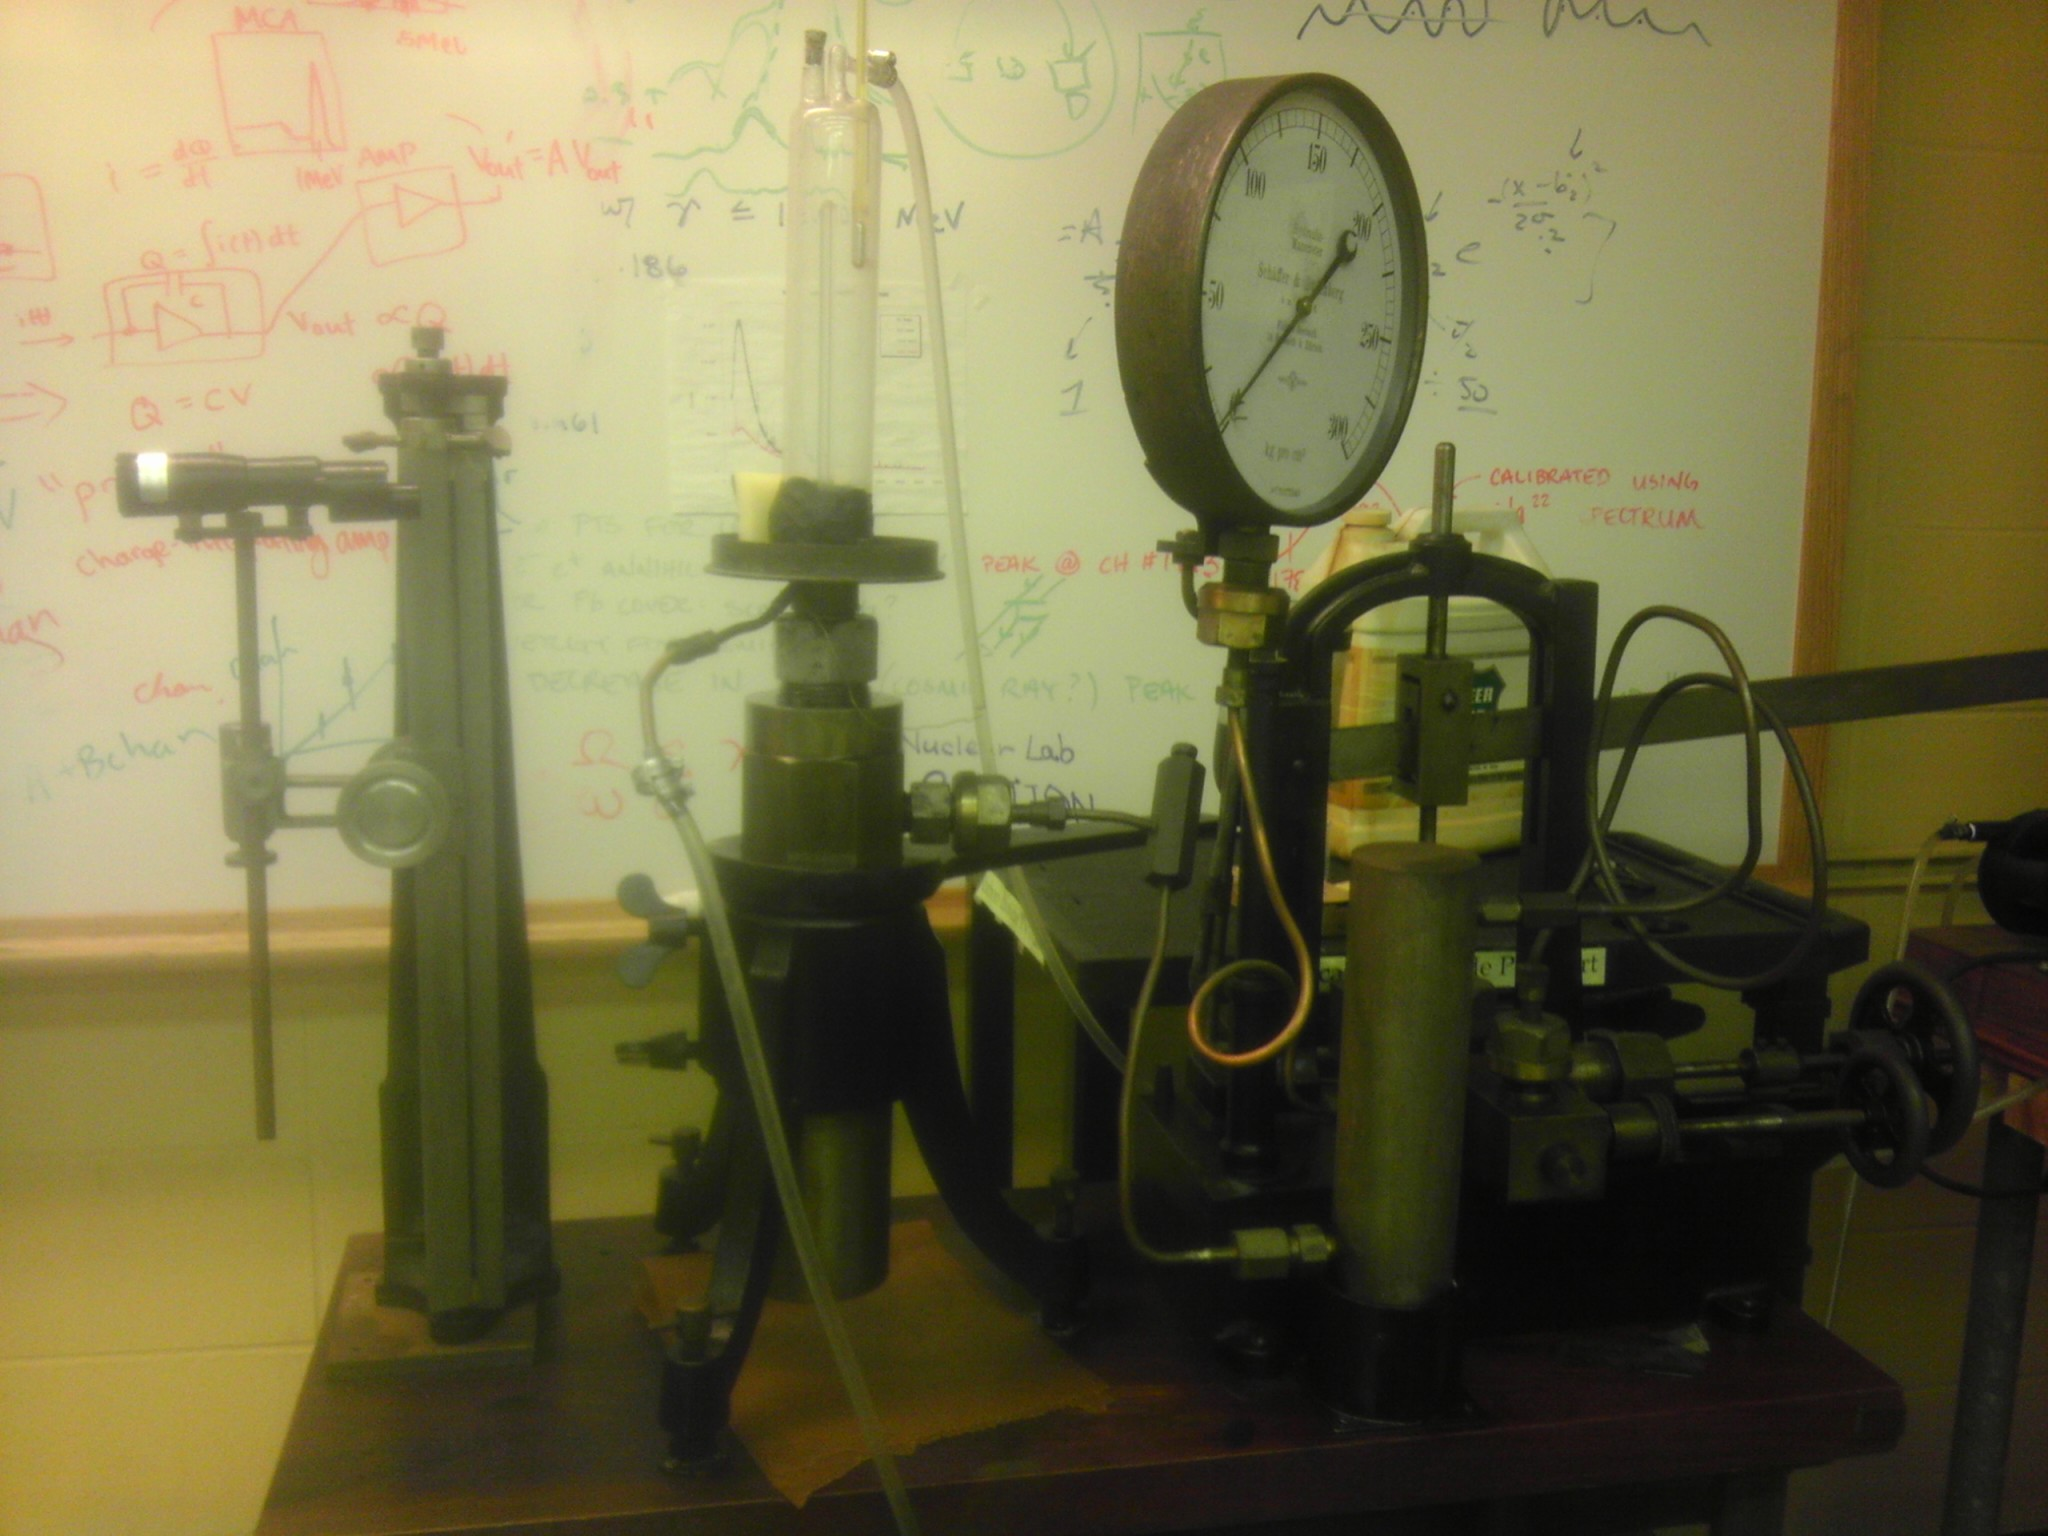 The apparatus. We measured the height of the mercury with the telescope on the left. The pressure gauge is to the right and the CO_2 sample is in the glass tube.